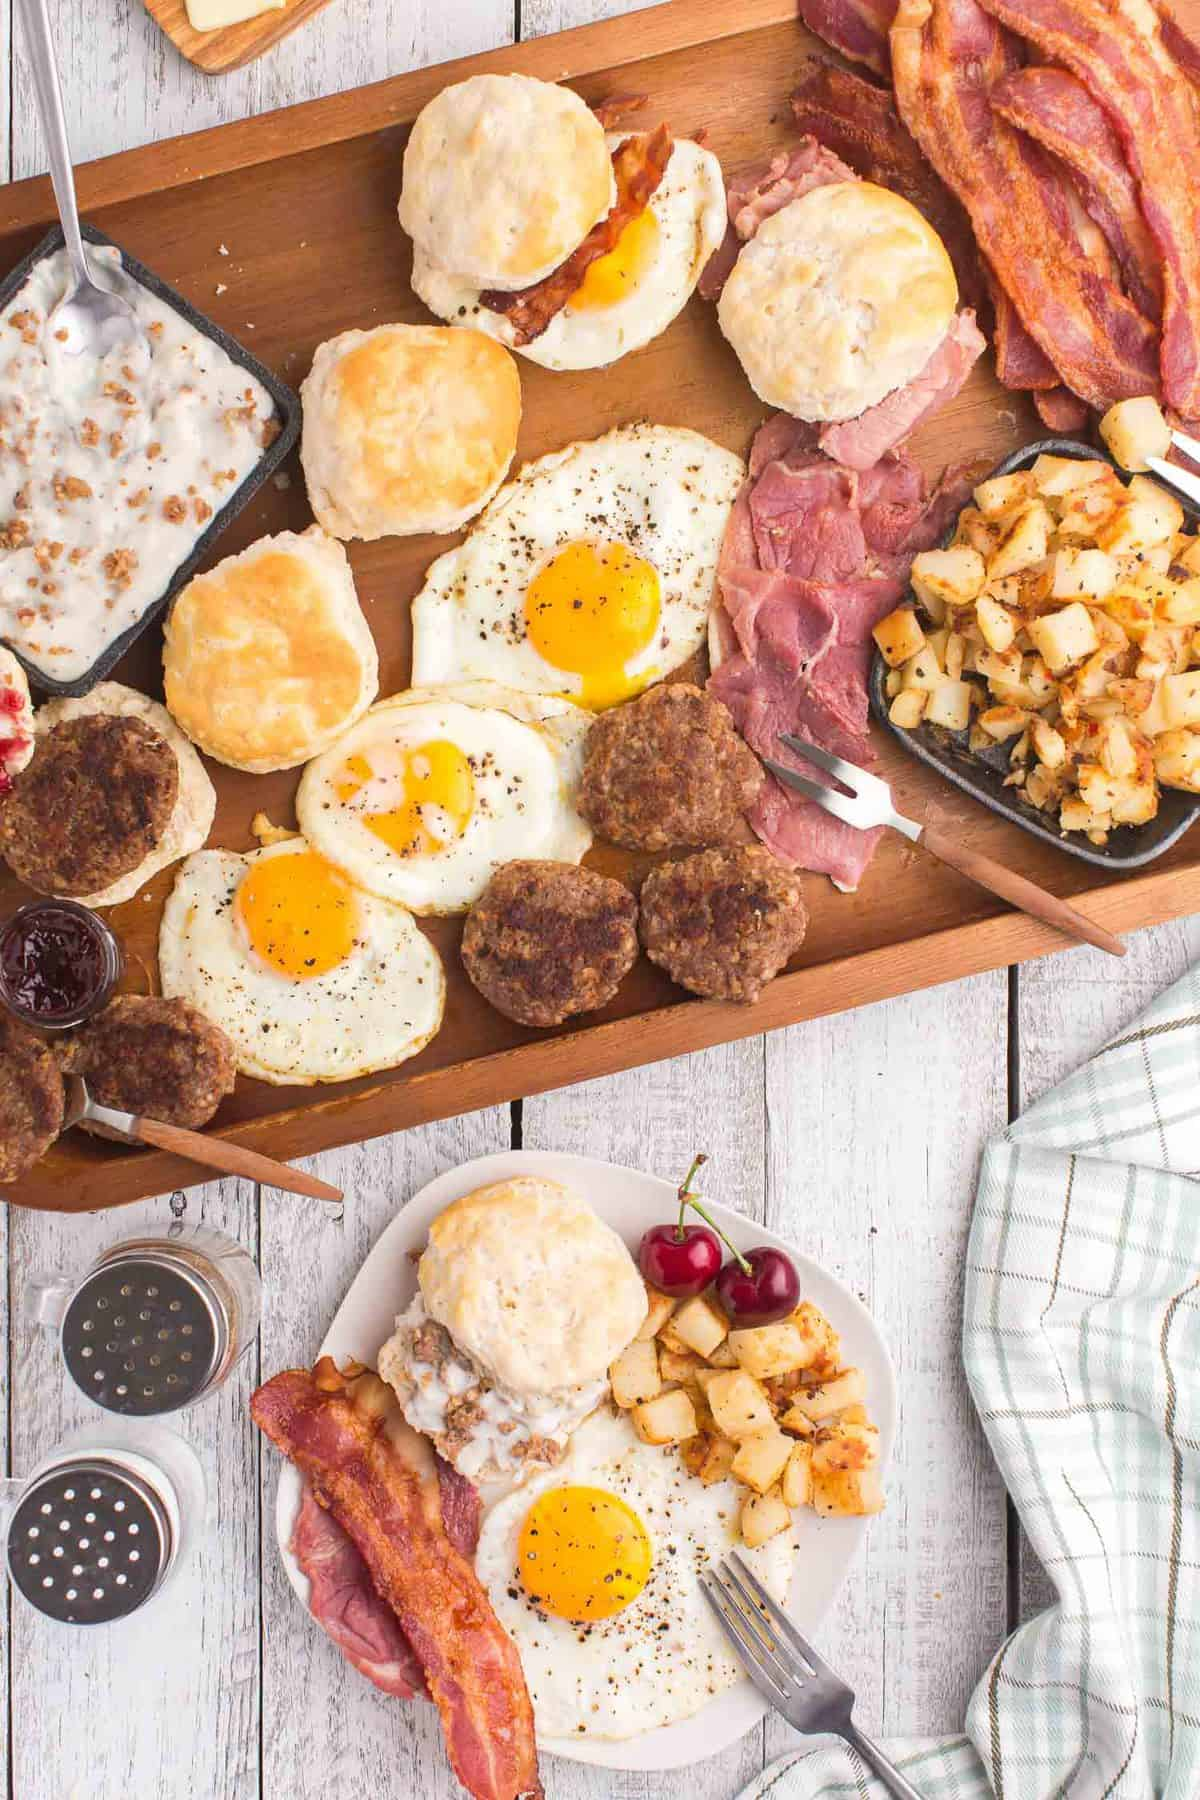 Assorted breakfast items on a wooden tray with a filled plate nearby.